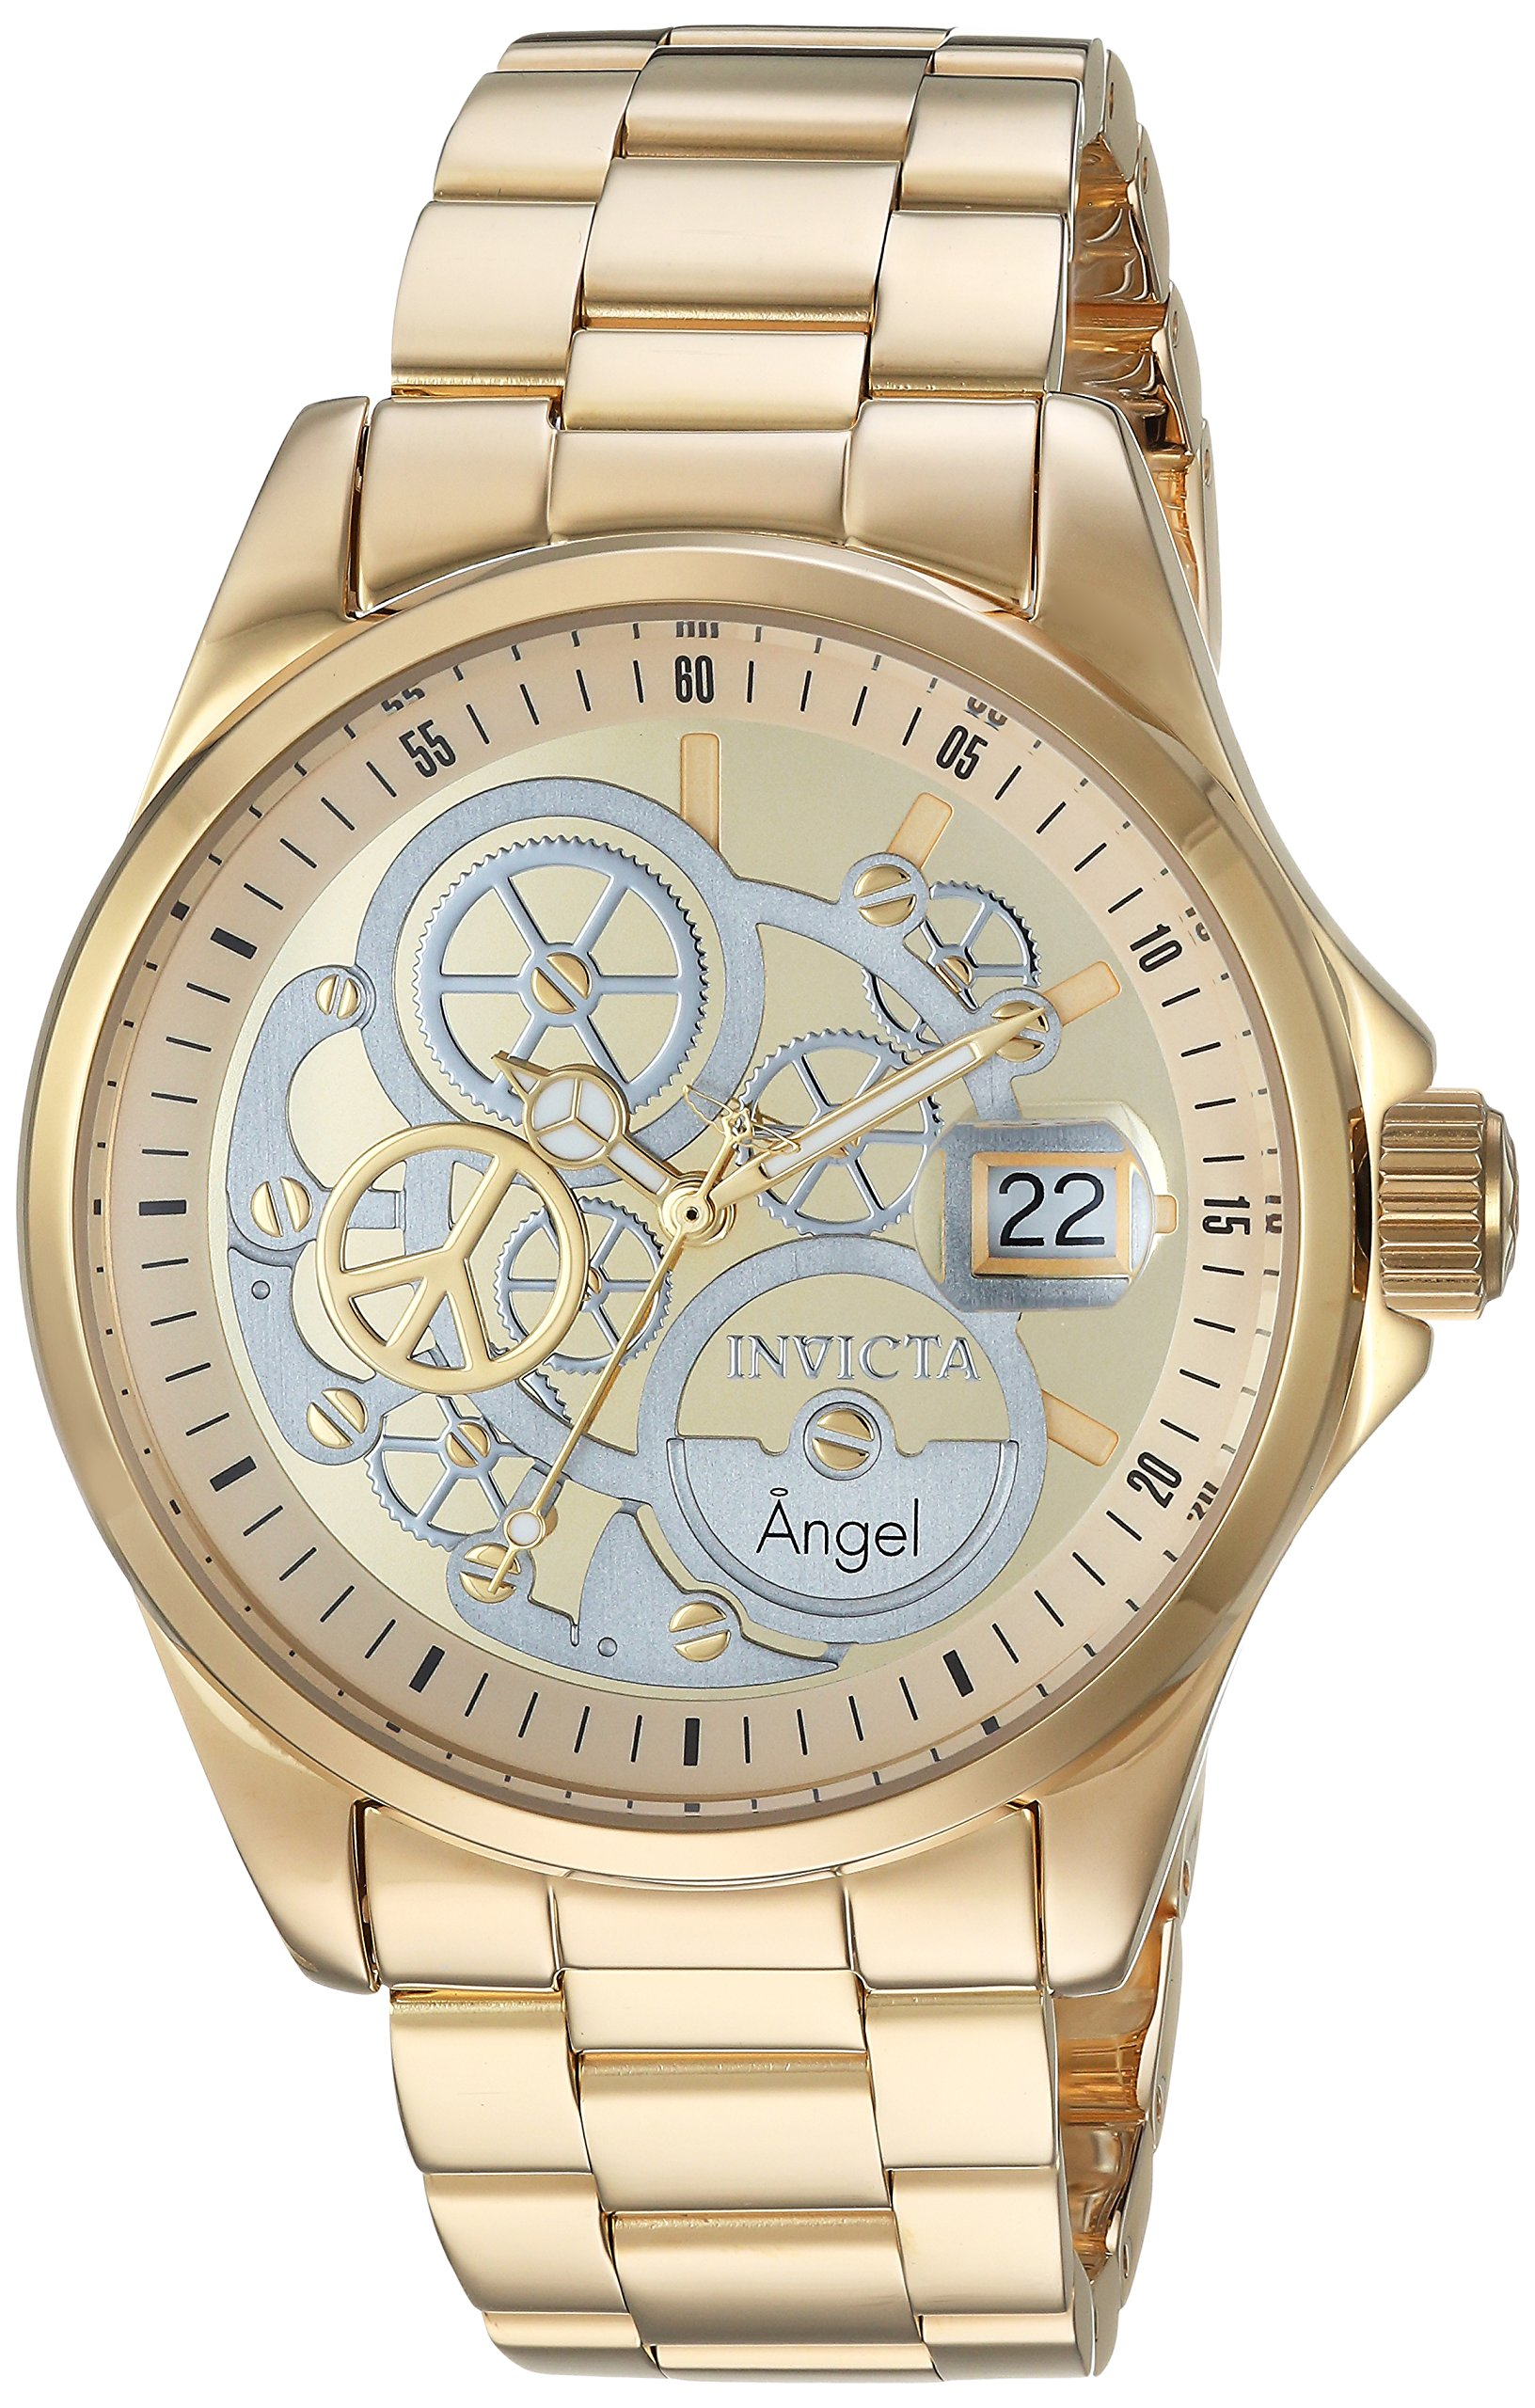 ویکالا · خرید  اصل اورجینال · خرید از آمازون · Invicta Women's Angel Quartz Watch with Stainless-Steel Strap, Gold, 9 (Model: 23568) wekala · ویکالا